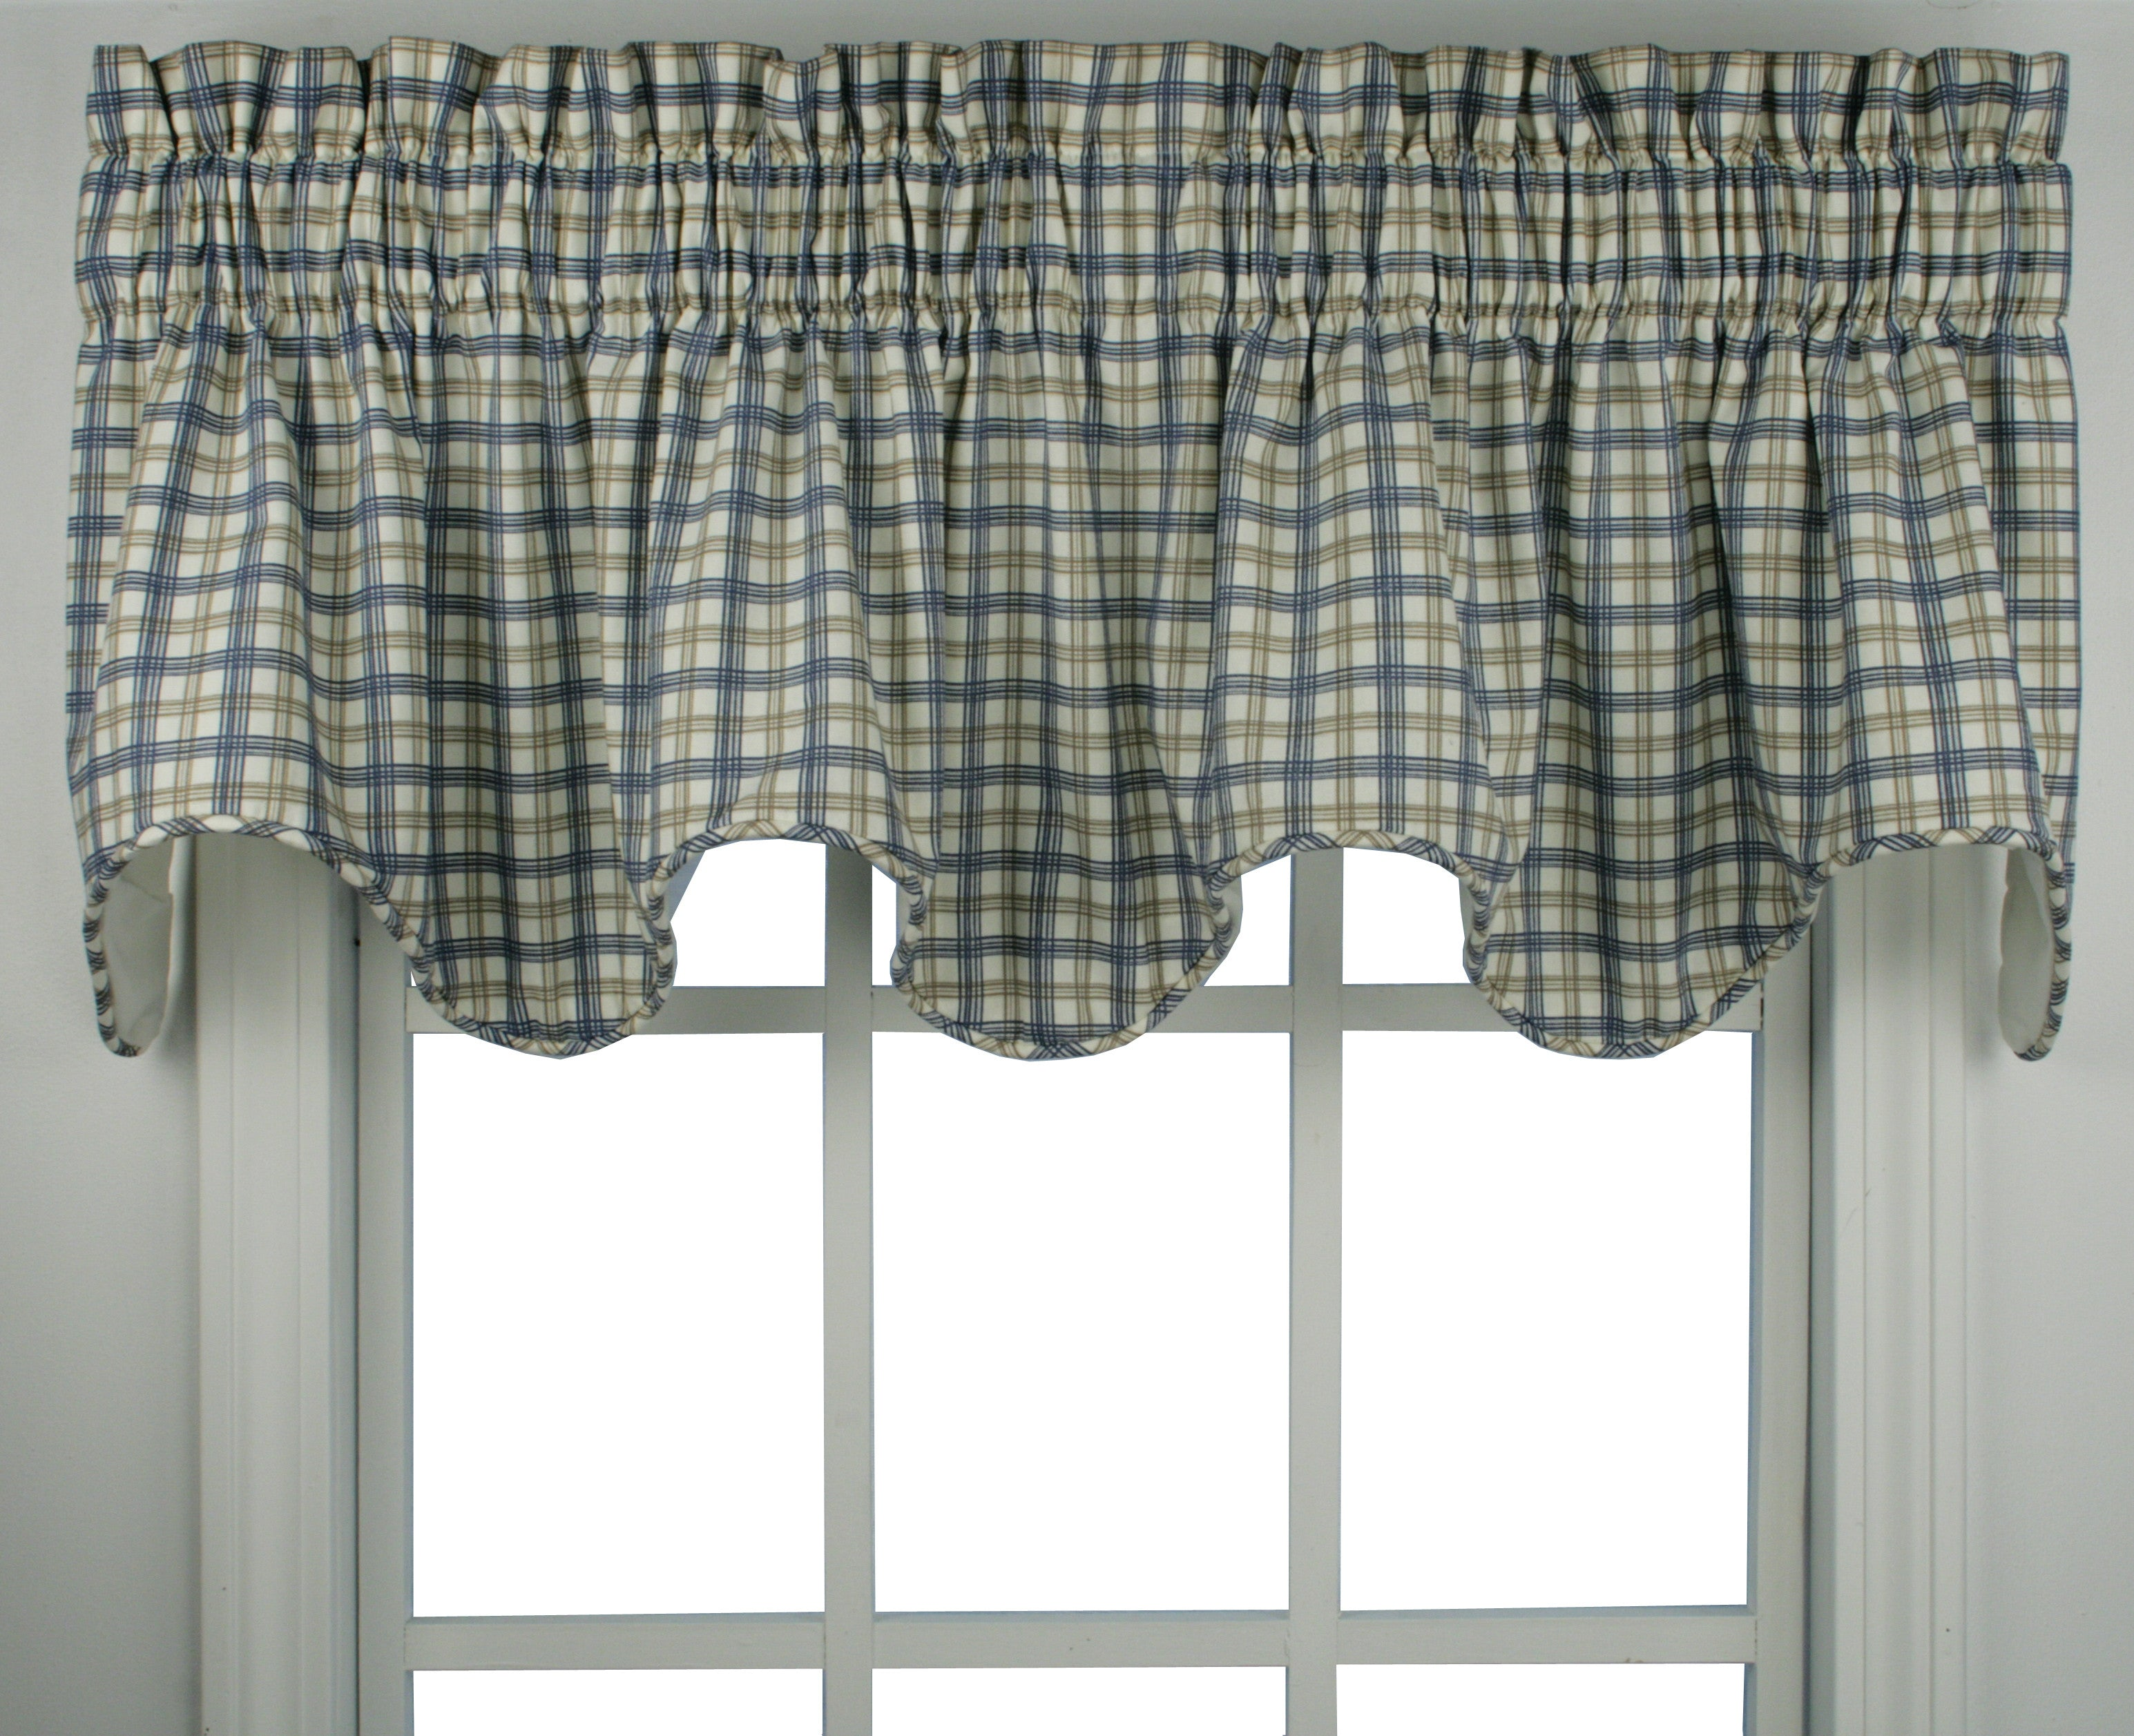 cotton window and trim percent n pattern classic kitchen blue pin valance white curtains pane crotchet